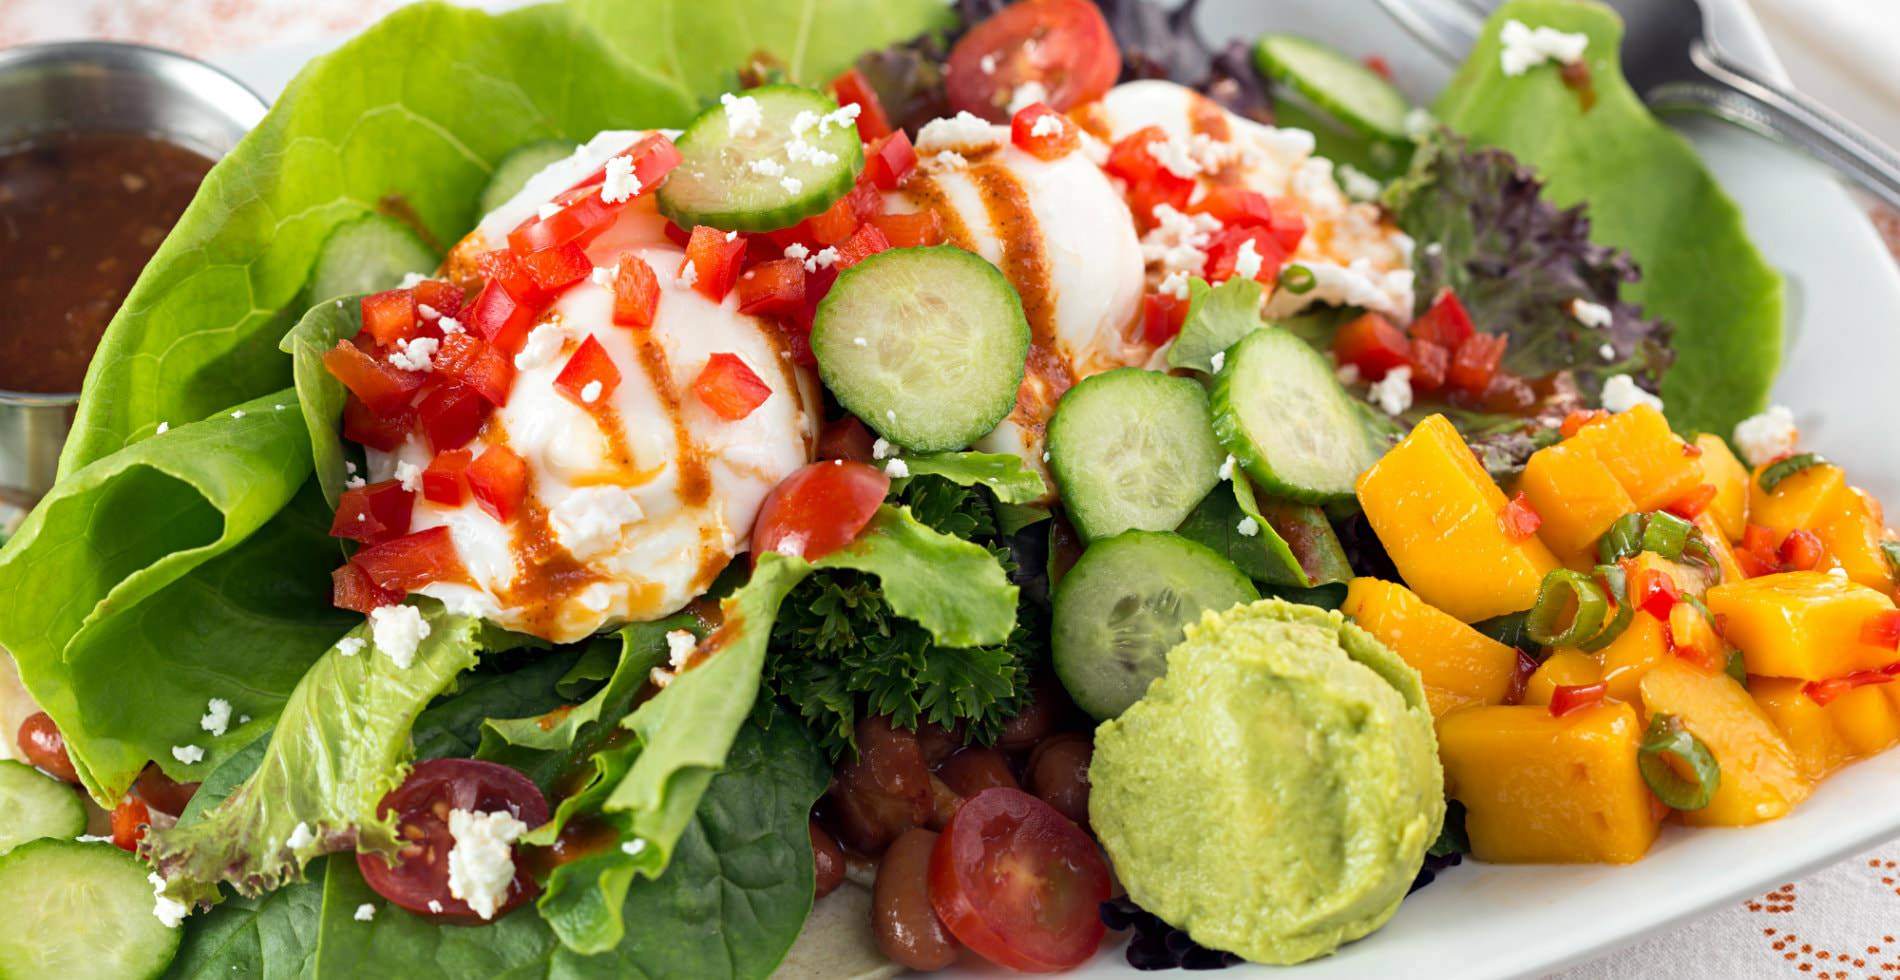 vibrant mixed salad with an array of green vegetables, topped with guacamole and tomatoes